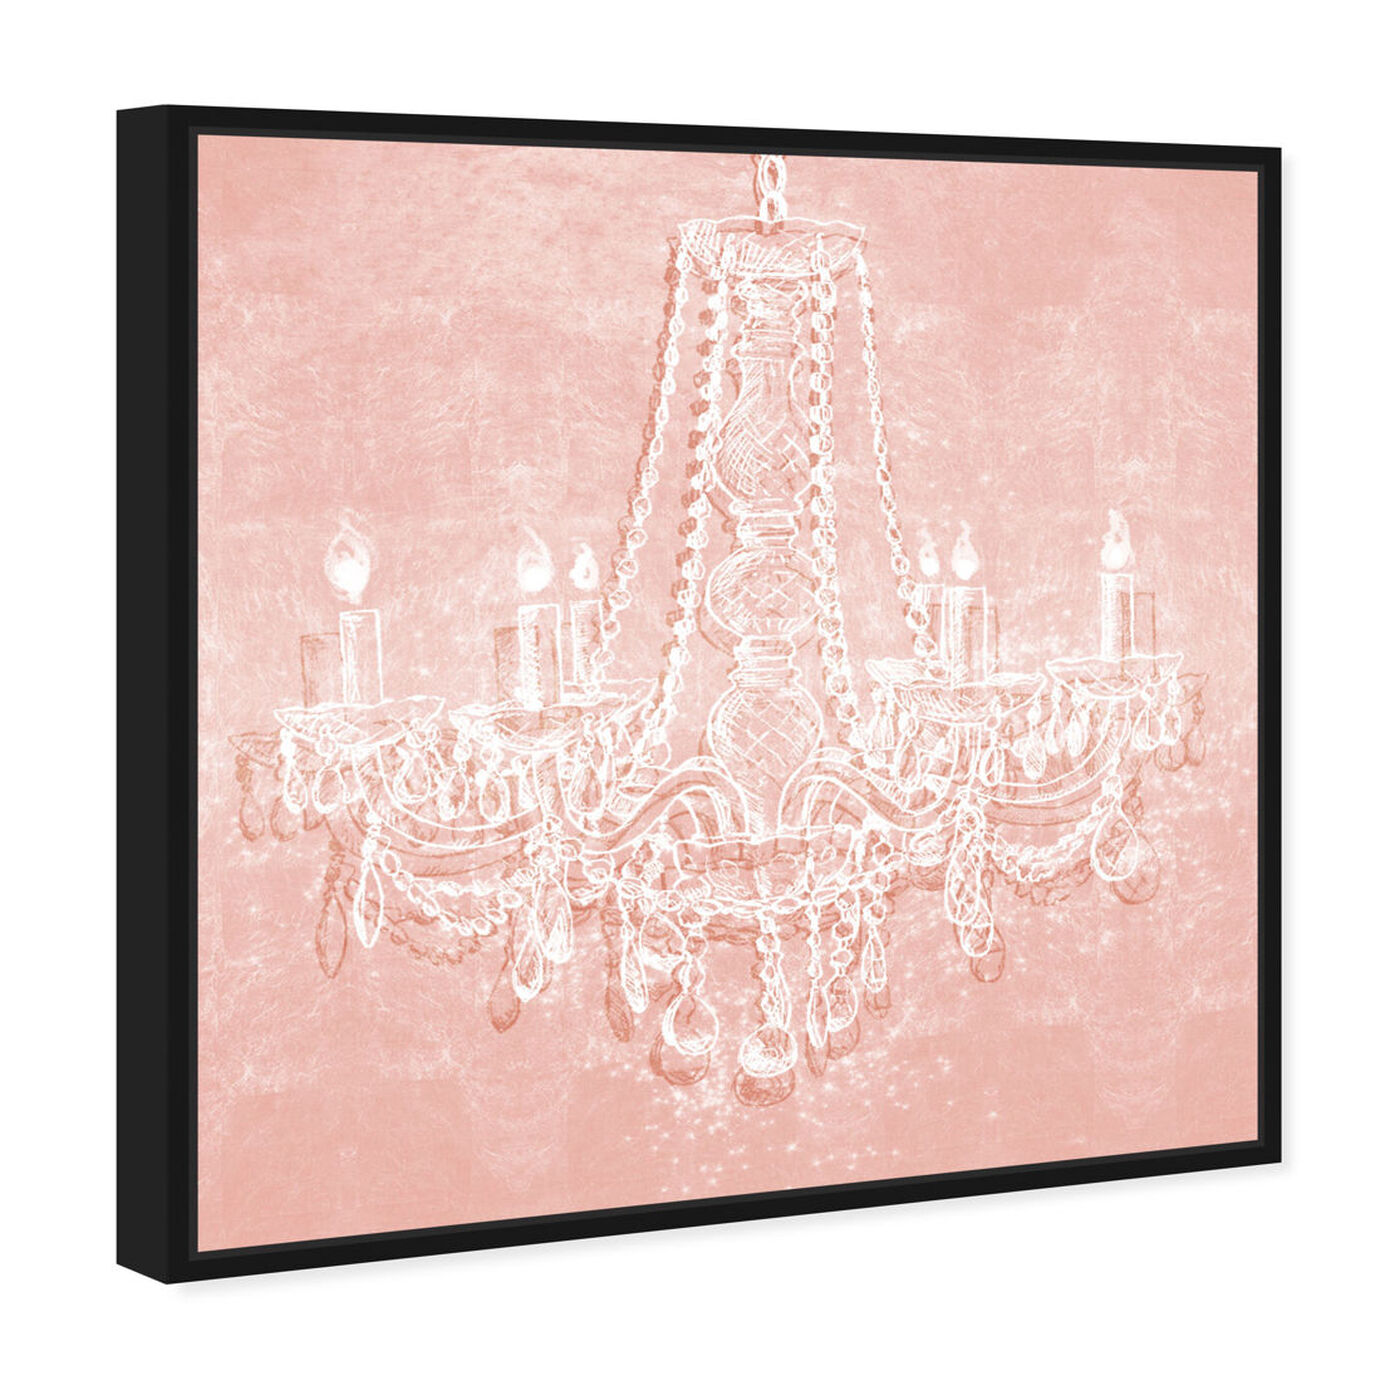 Angled view of Light in the Rose featuring fashion and glam and chandeliers art.